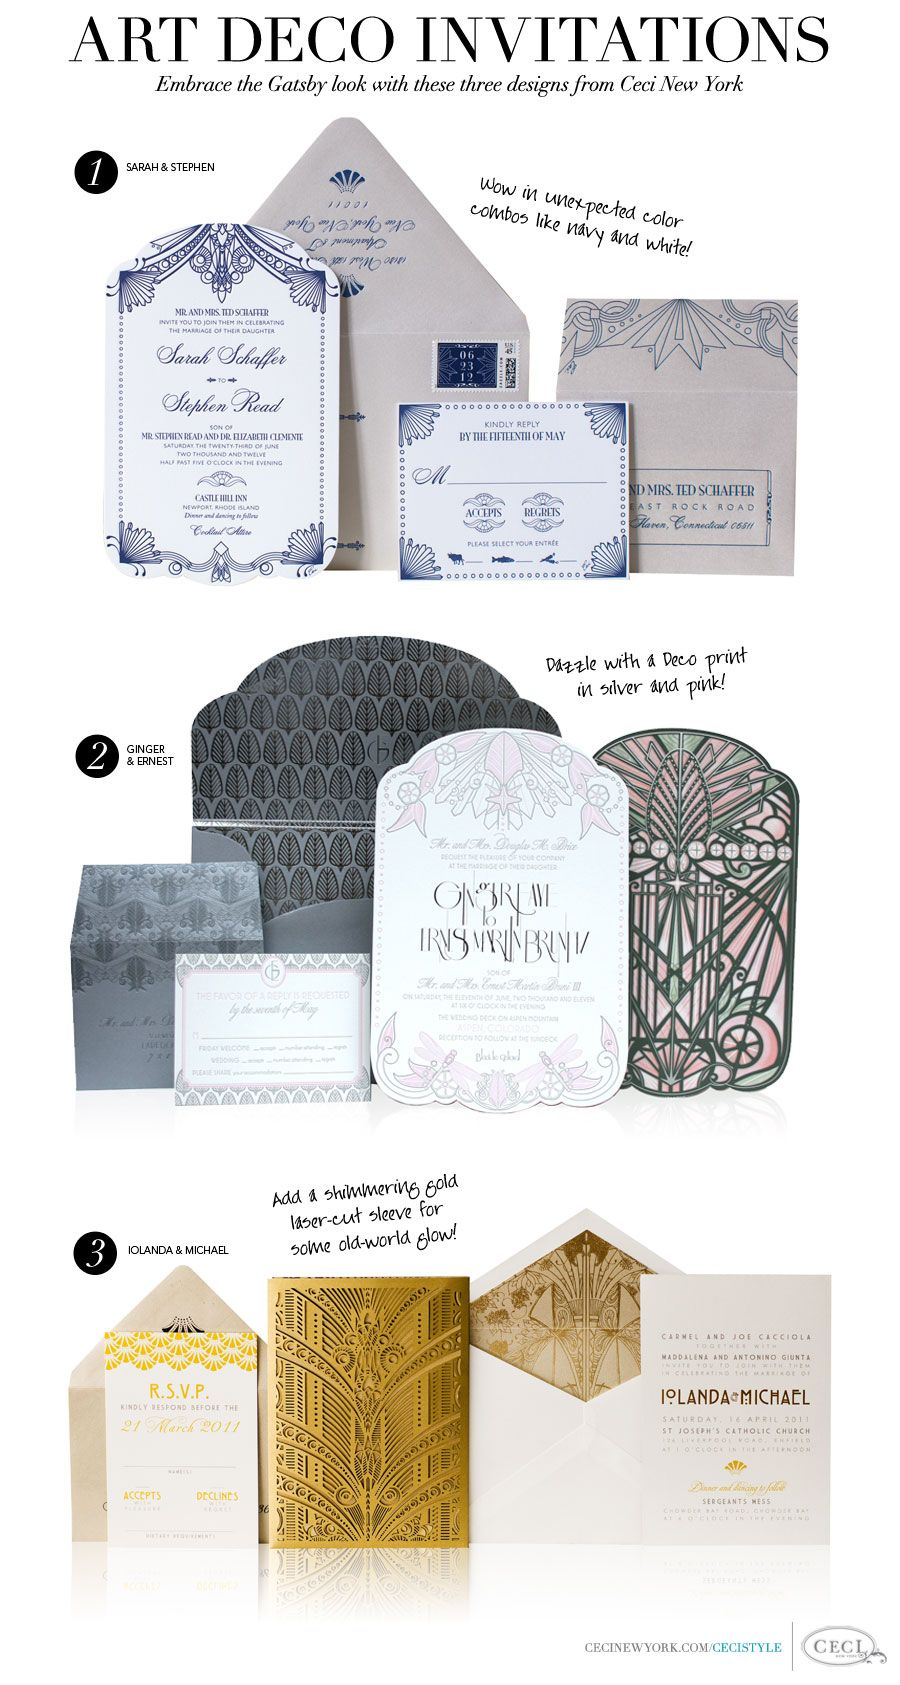 CeciStyle v146: Art Deco Invitations - Embrace the Gatsby look with these three designs from Ceci New York